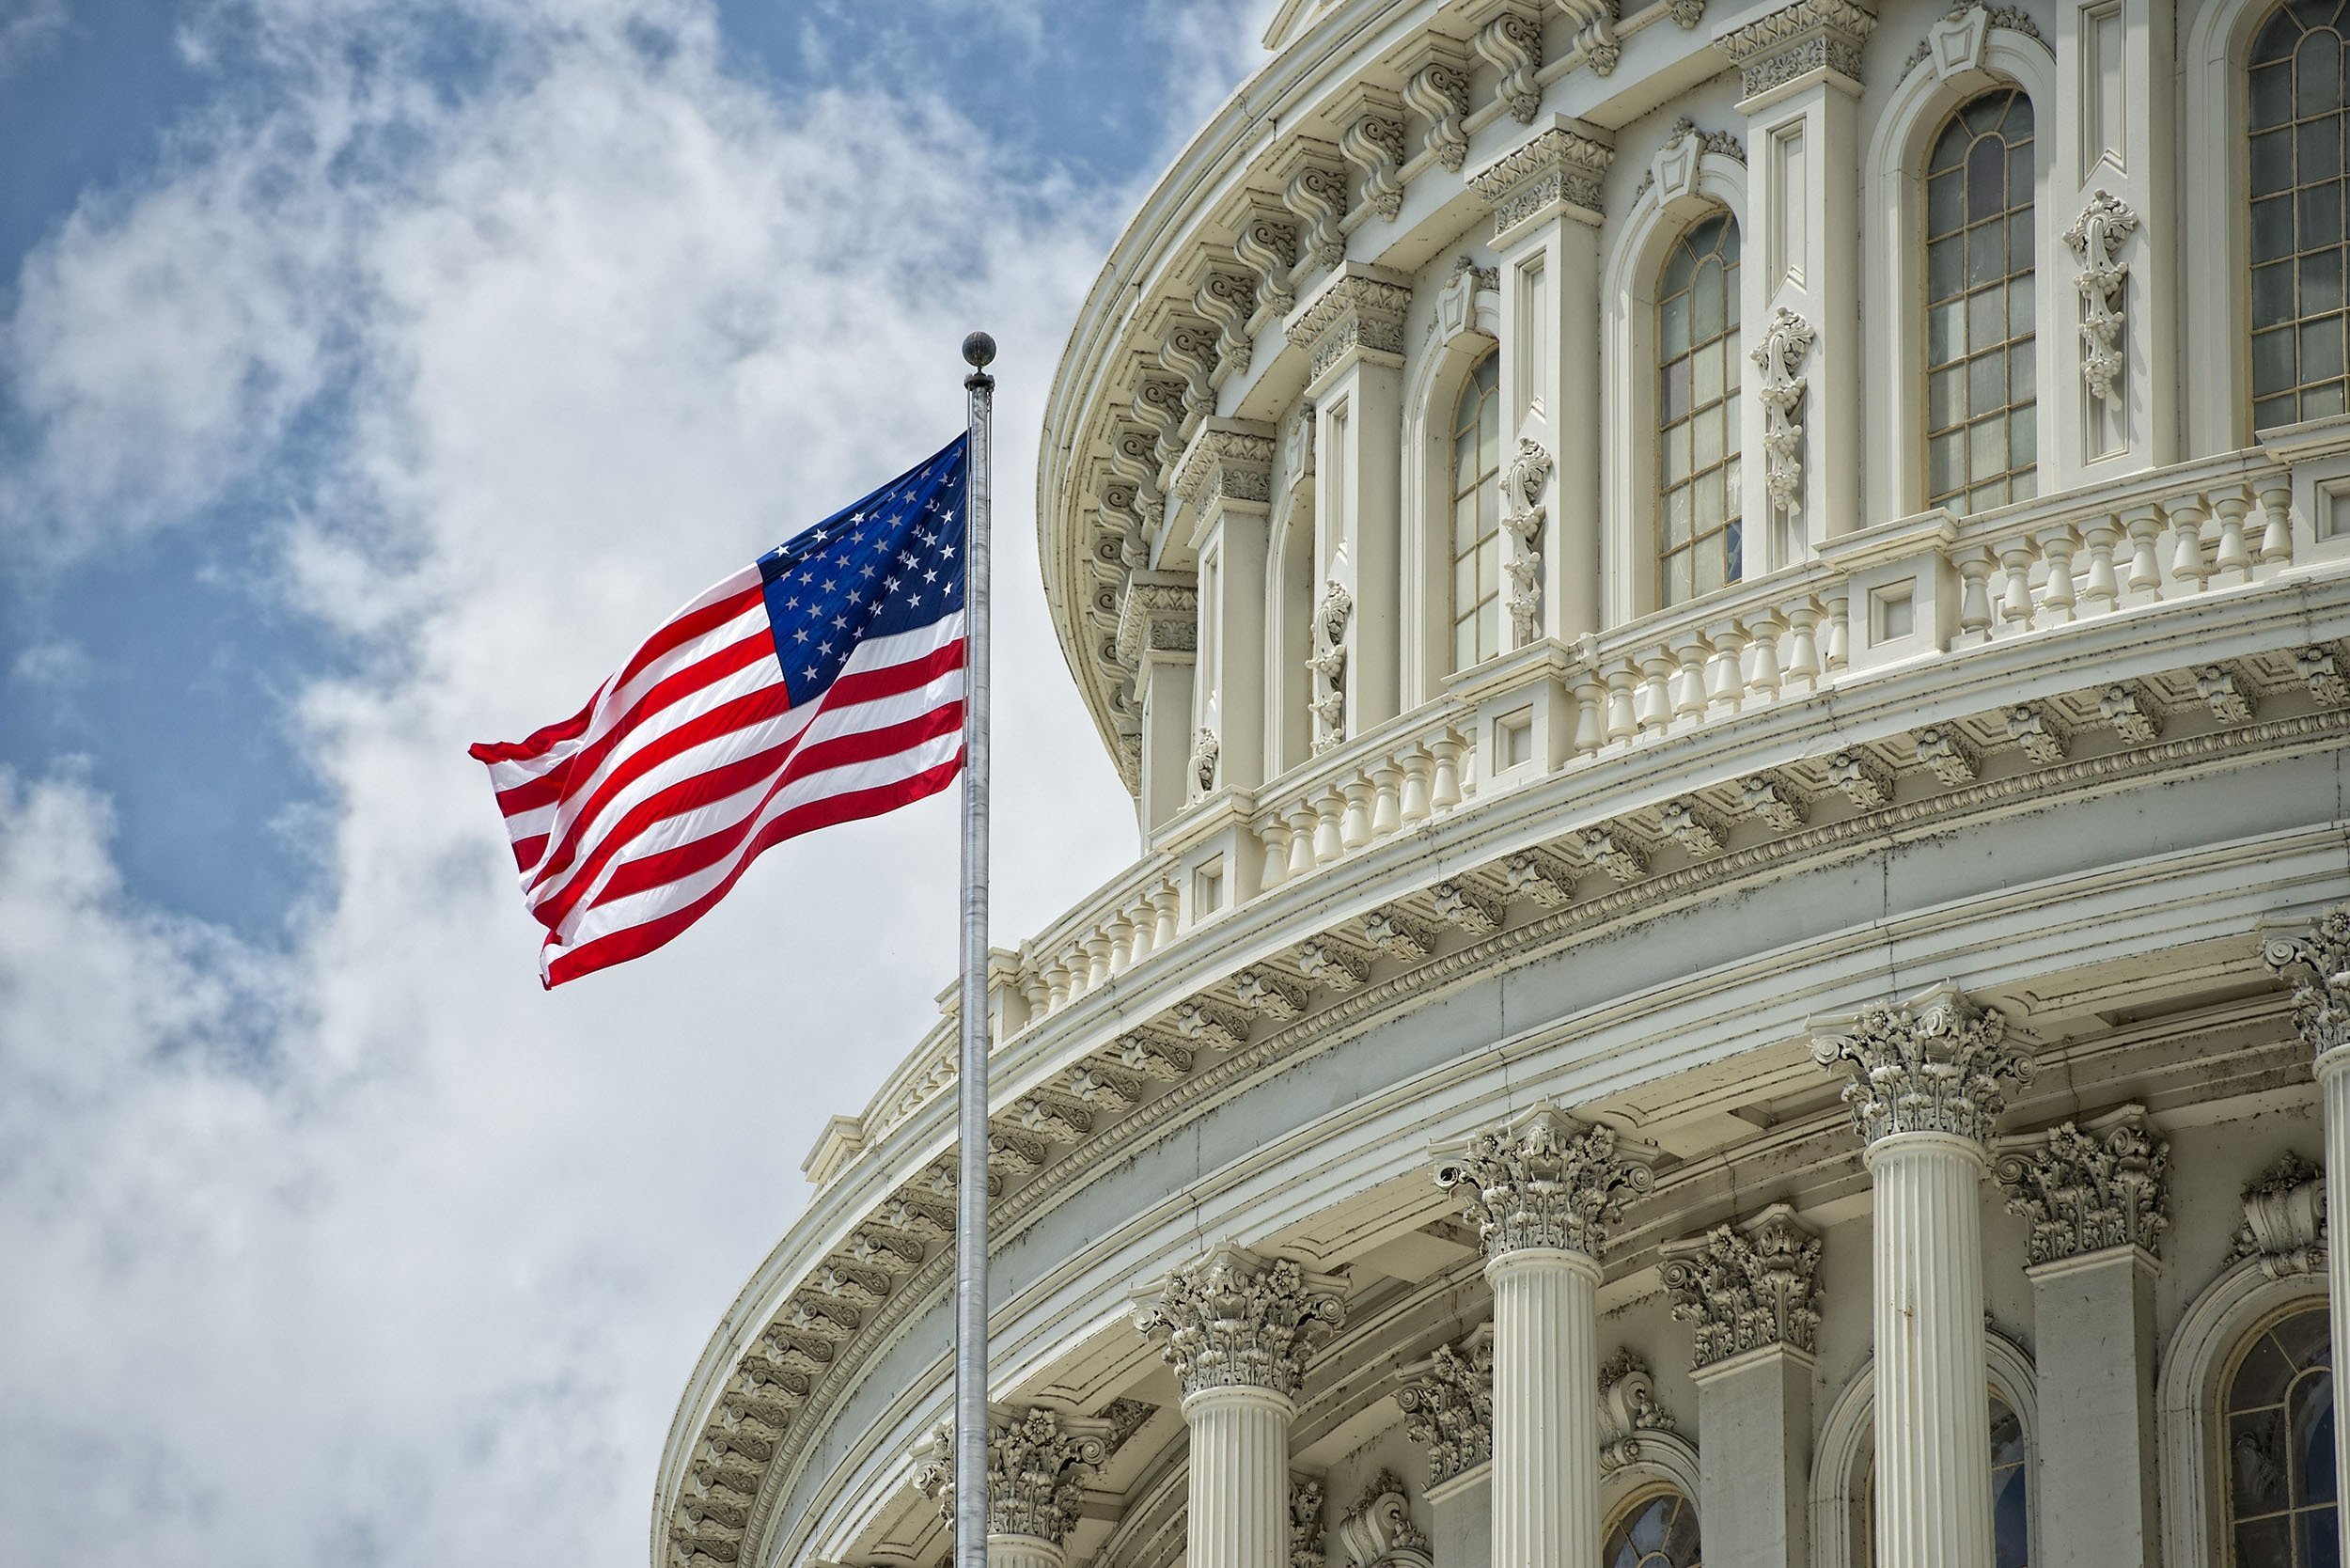 The U.S. flag flutters on the Capitol building in Washington, D.C., U.S. (Shutterstock Photo)